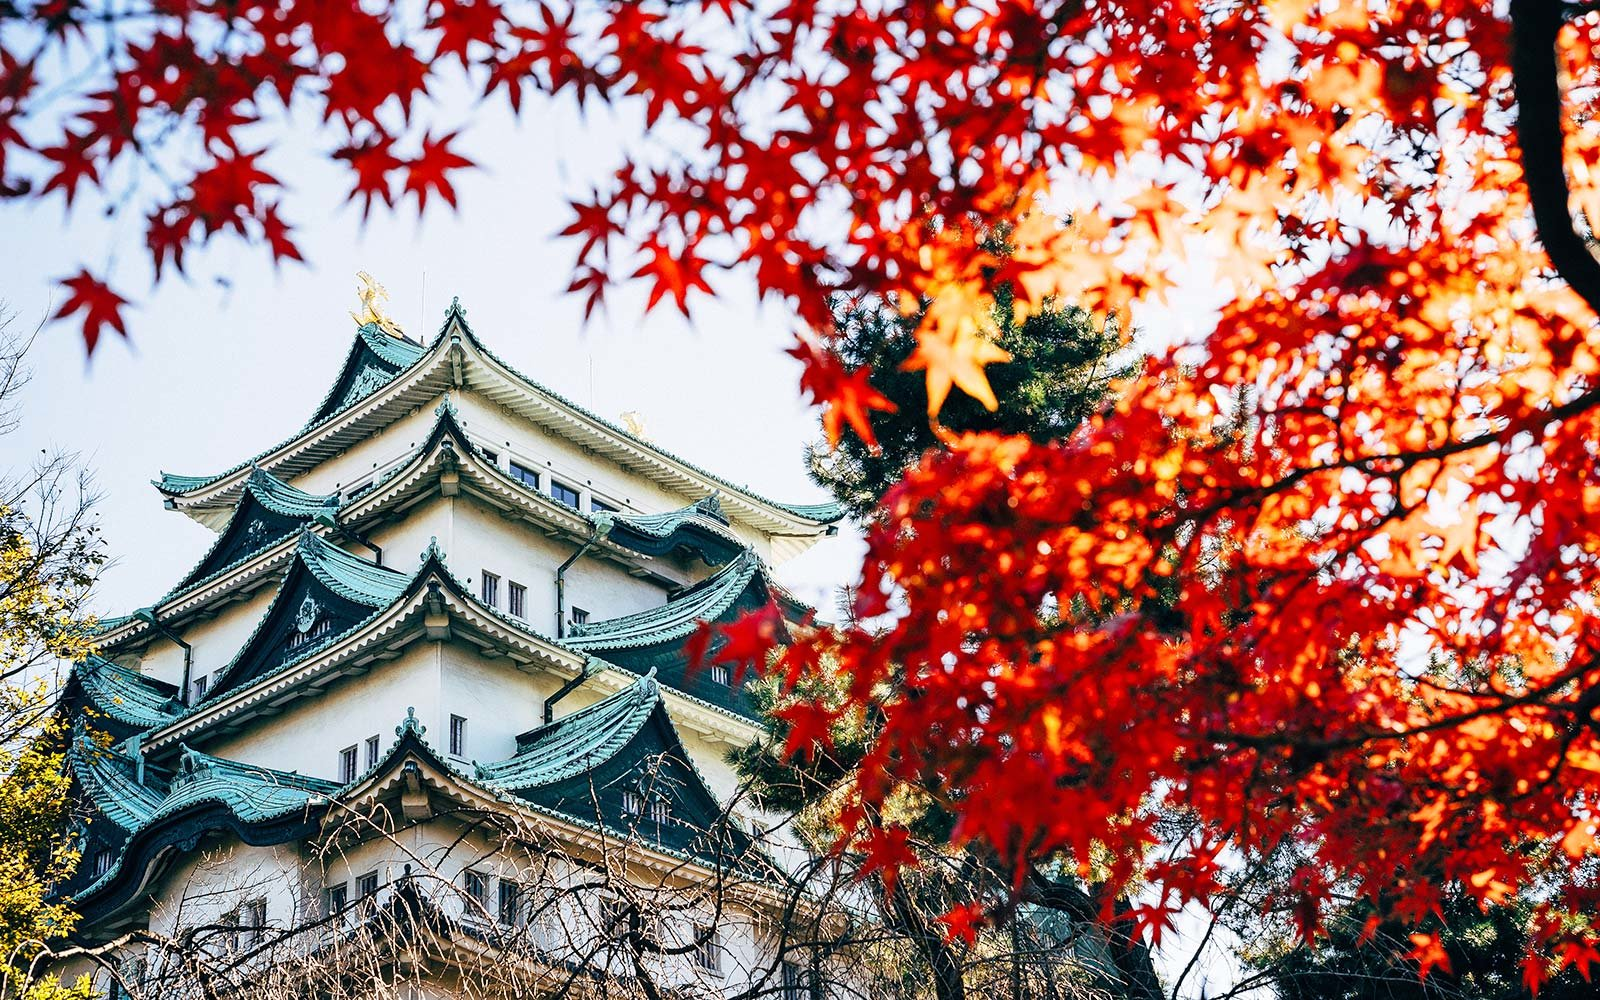 Nagoya castle autumn leaves